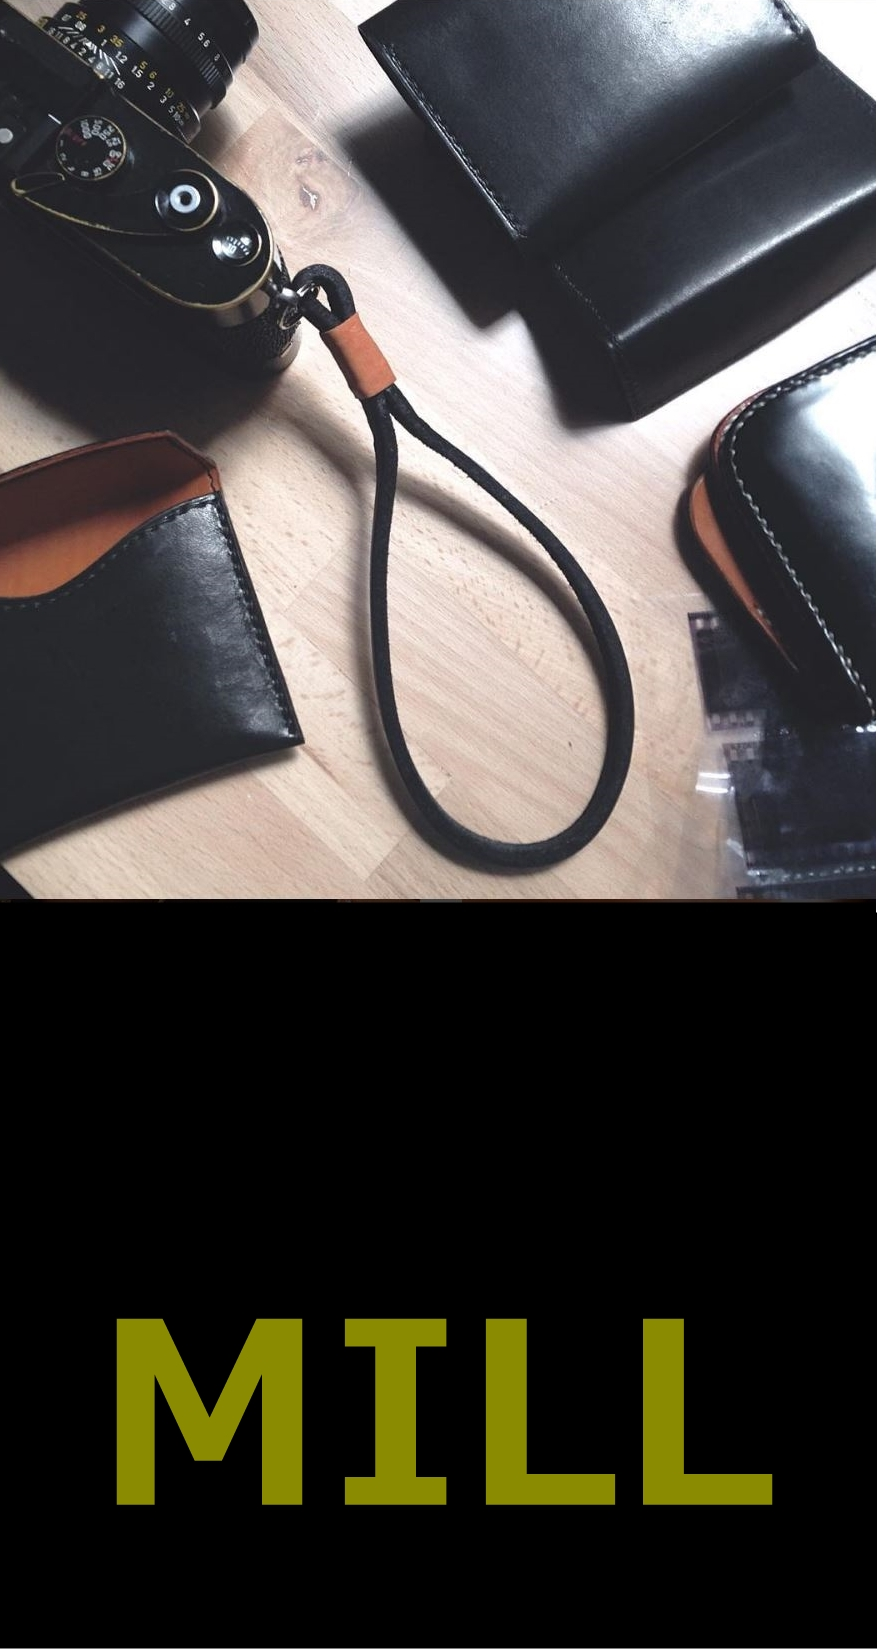 CRAFTED LEATHER GOODS